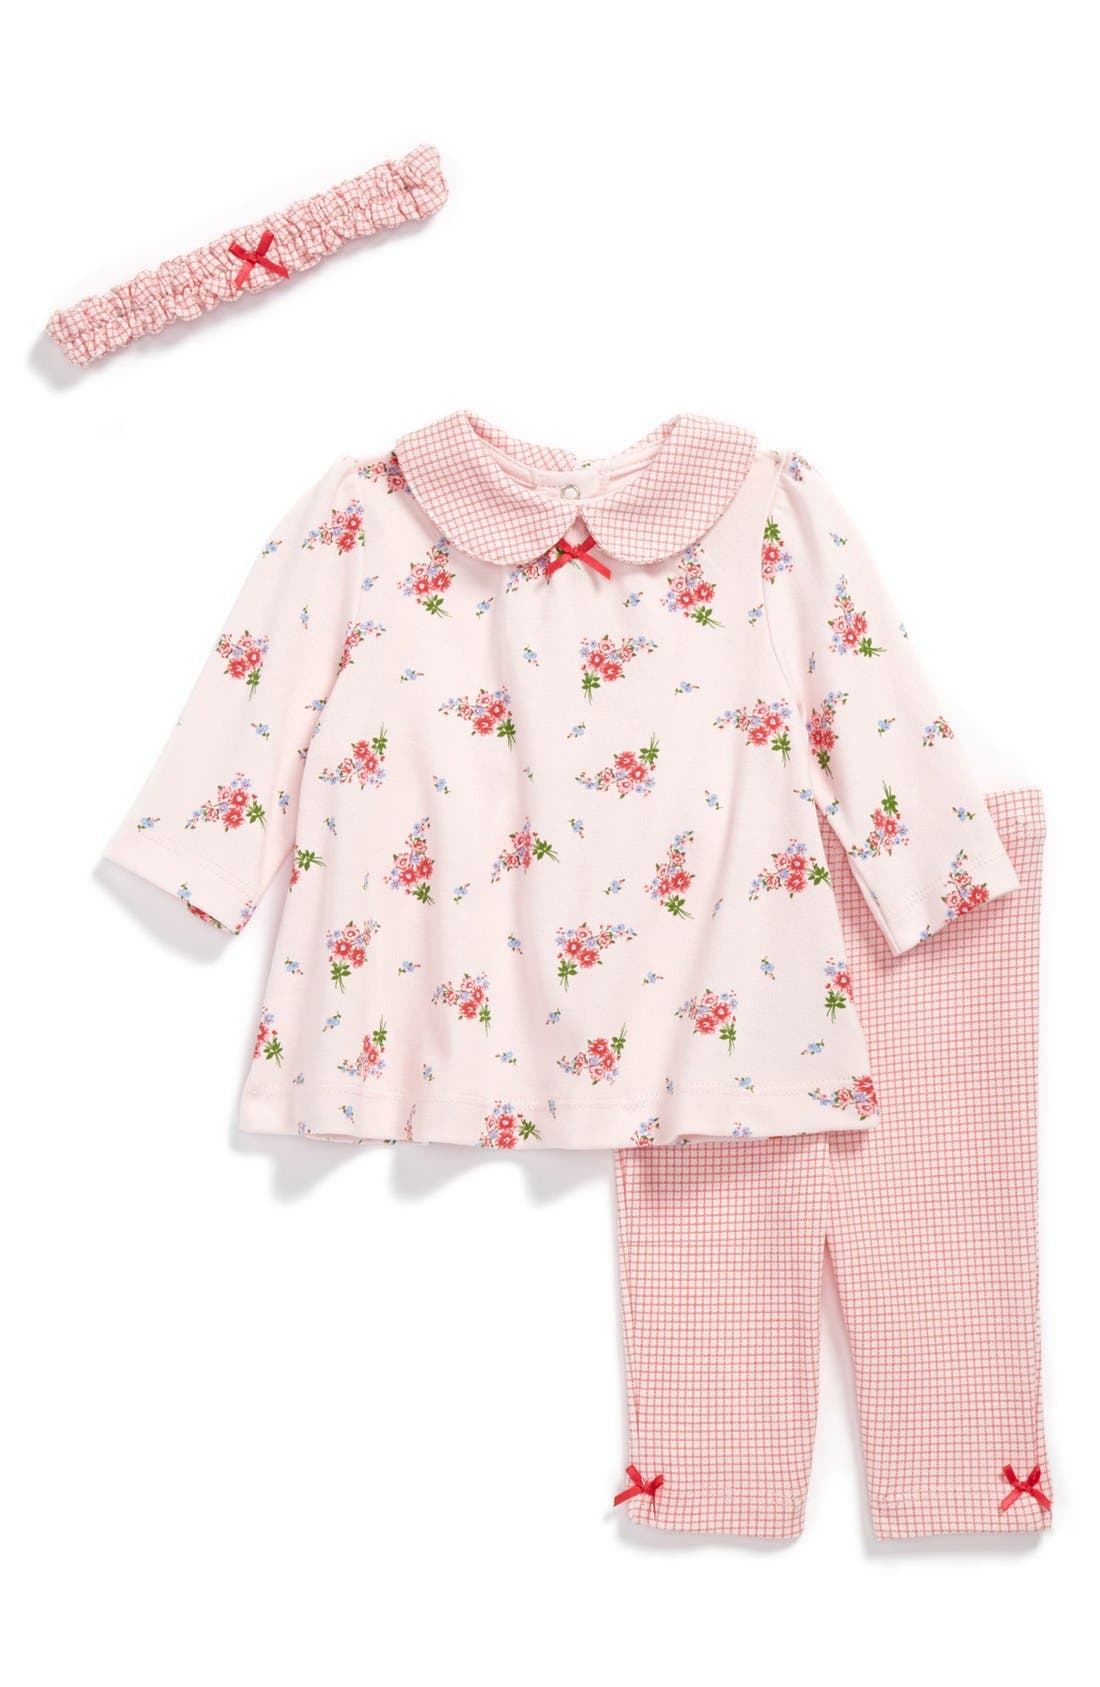 Main Image - Little Me 'Petite Posey' 3-Piece Set (Baby Girls)